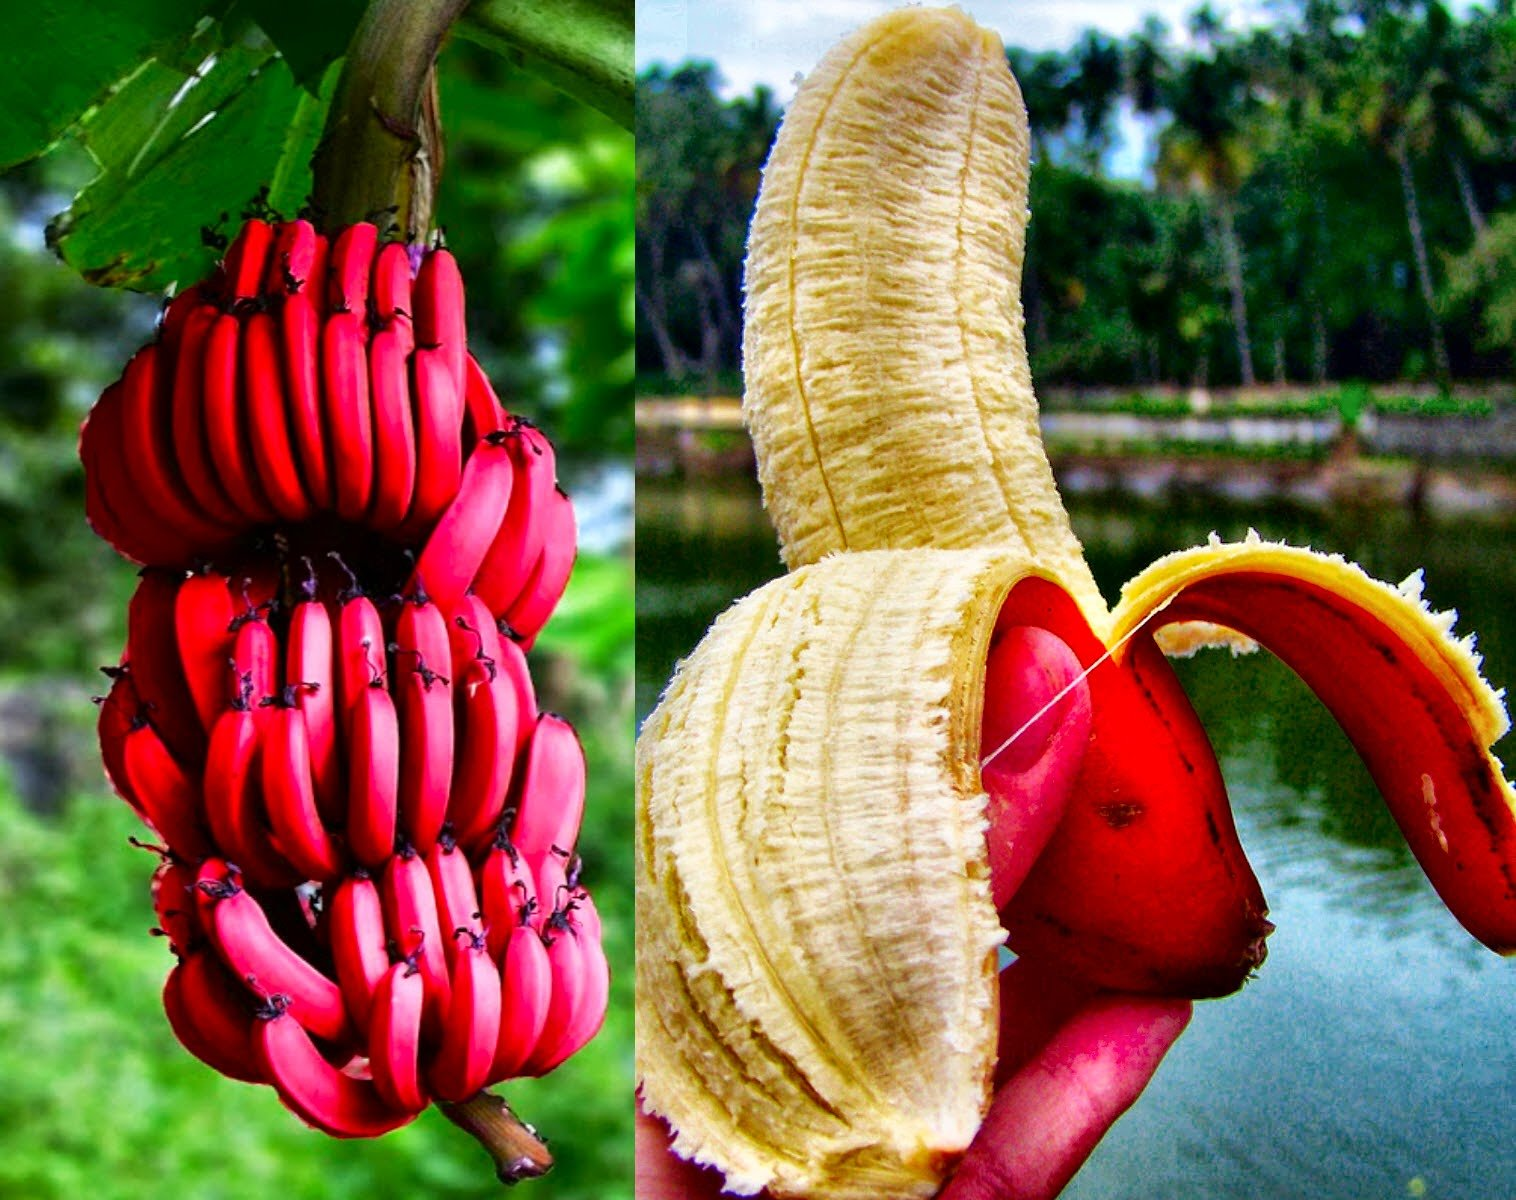 6. Red bananas 1